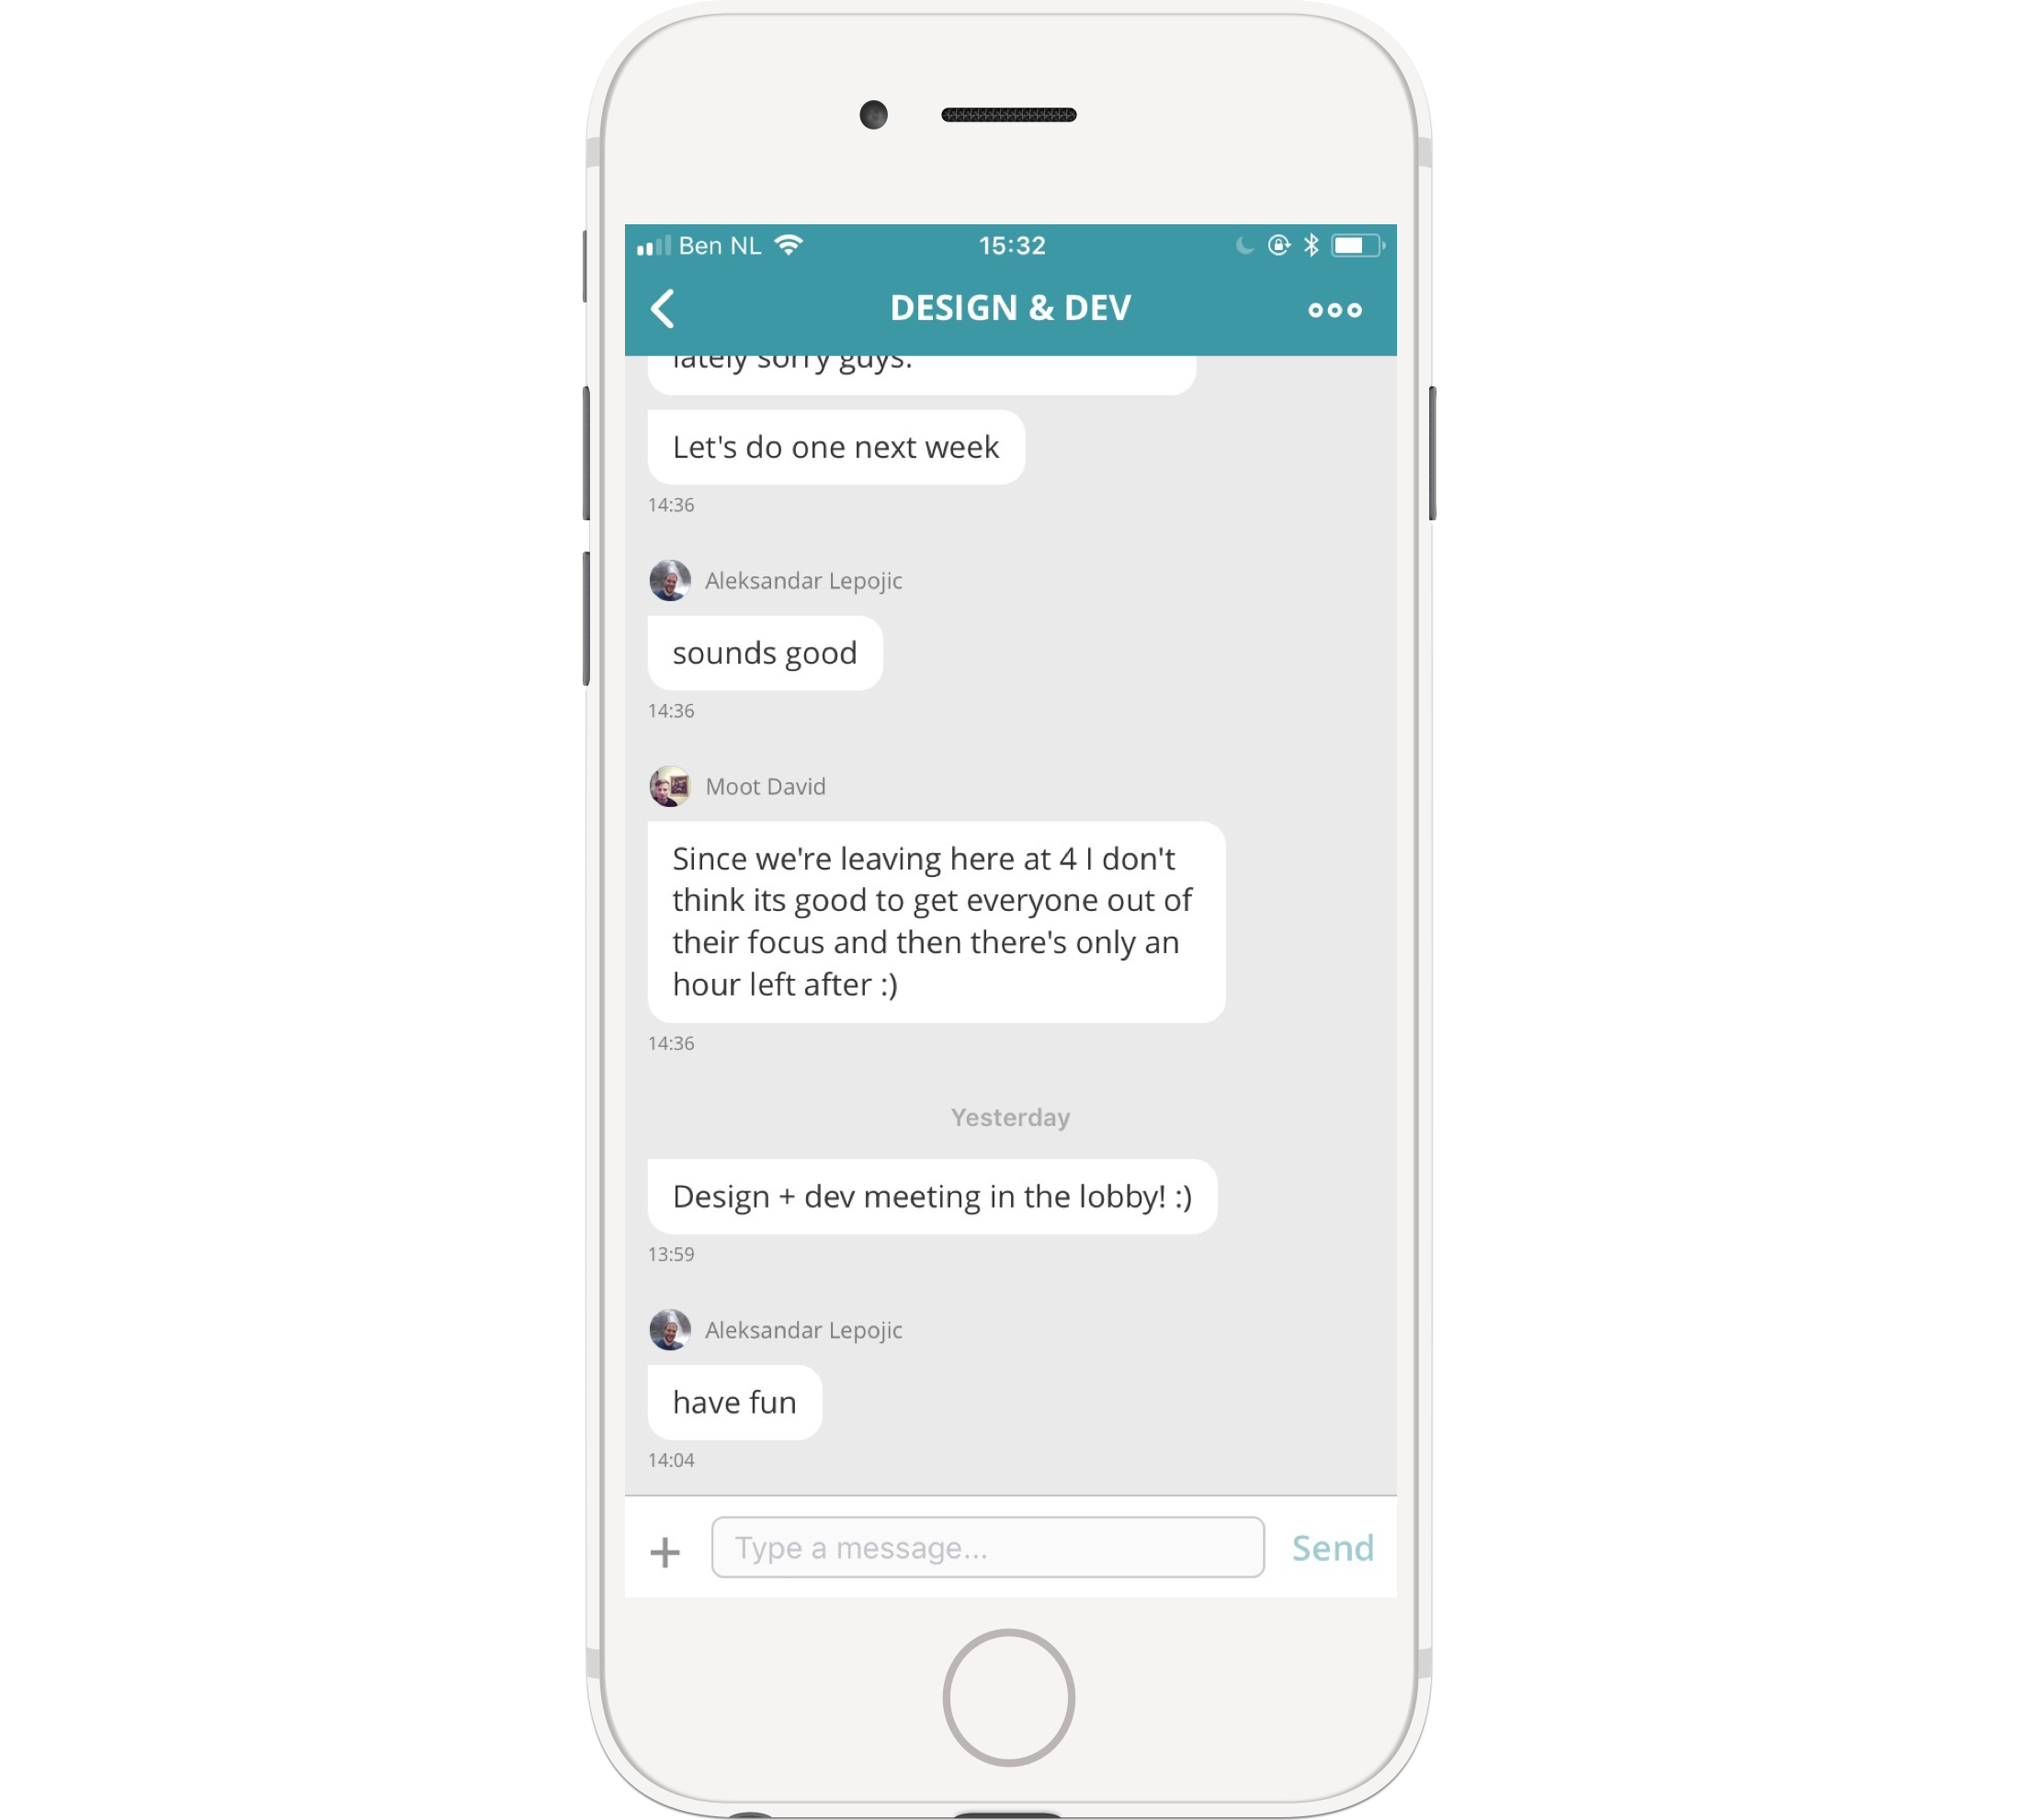 Collaborate wherever you are: access your group documents, chat or other information from your phone. Or start a new group!